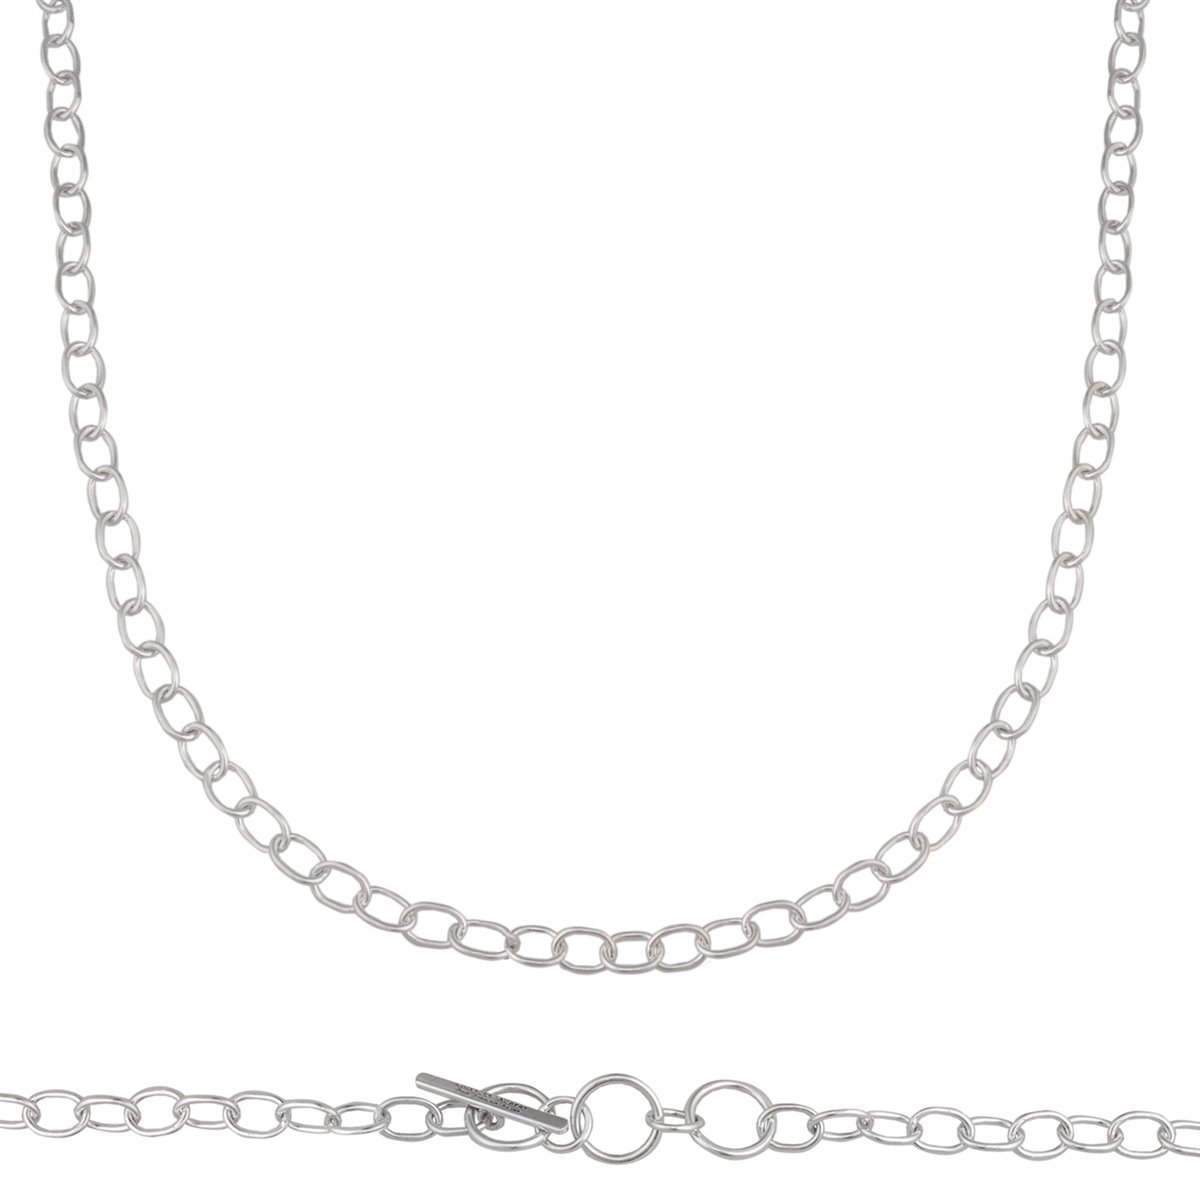 Sterling Silver Handmade Chain | Charles Albert Jewelry